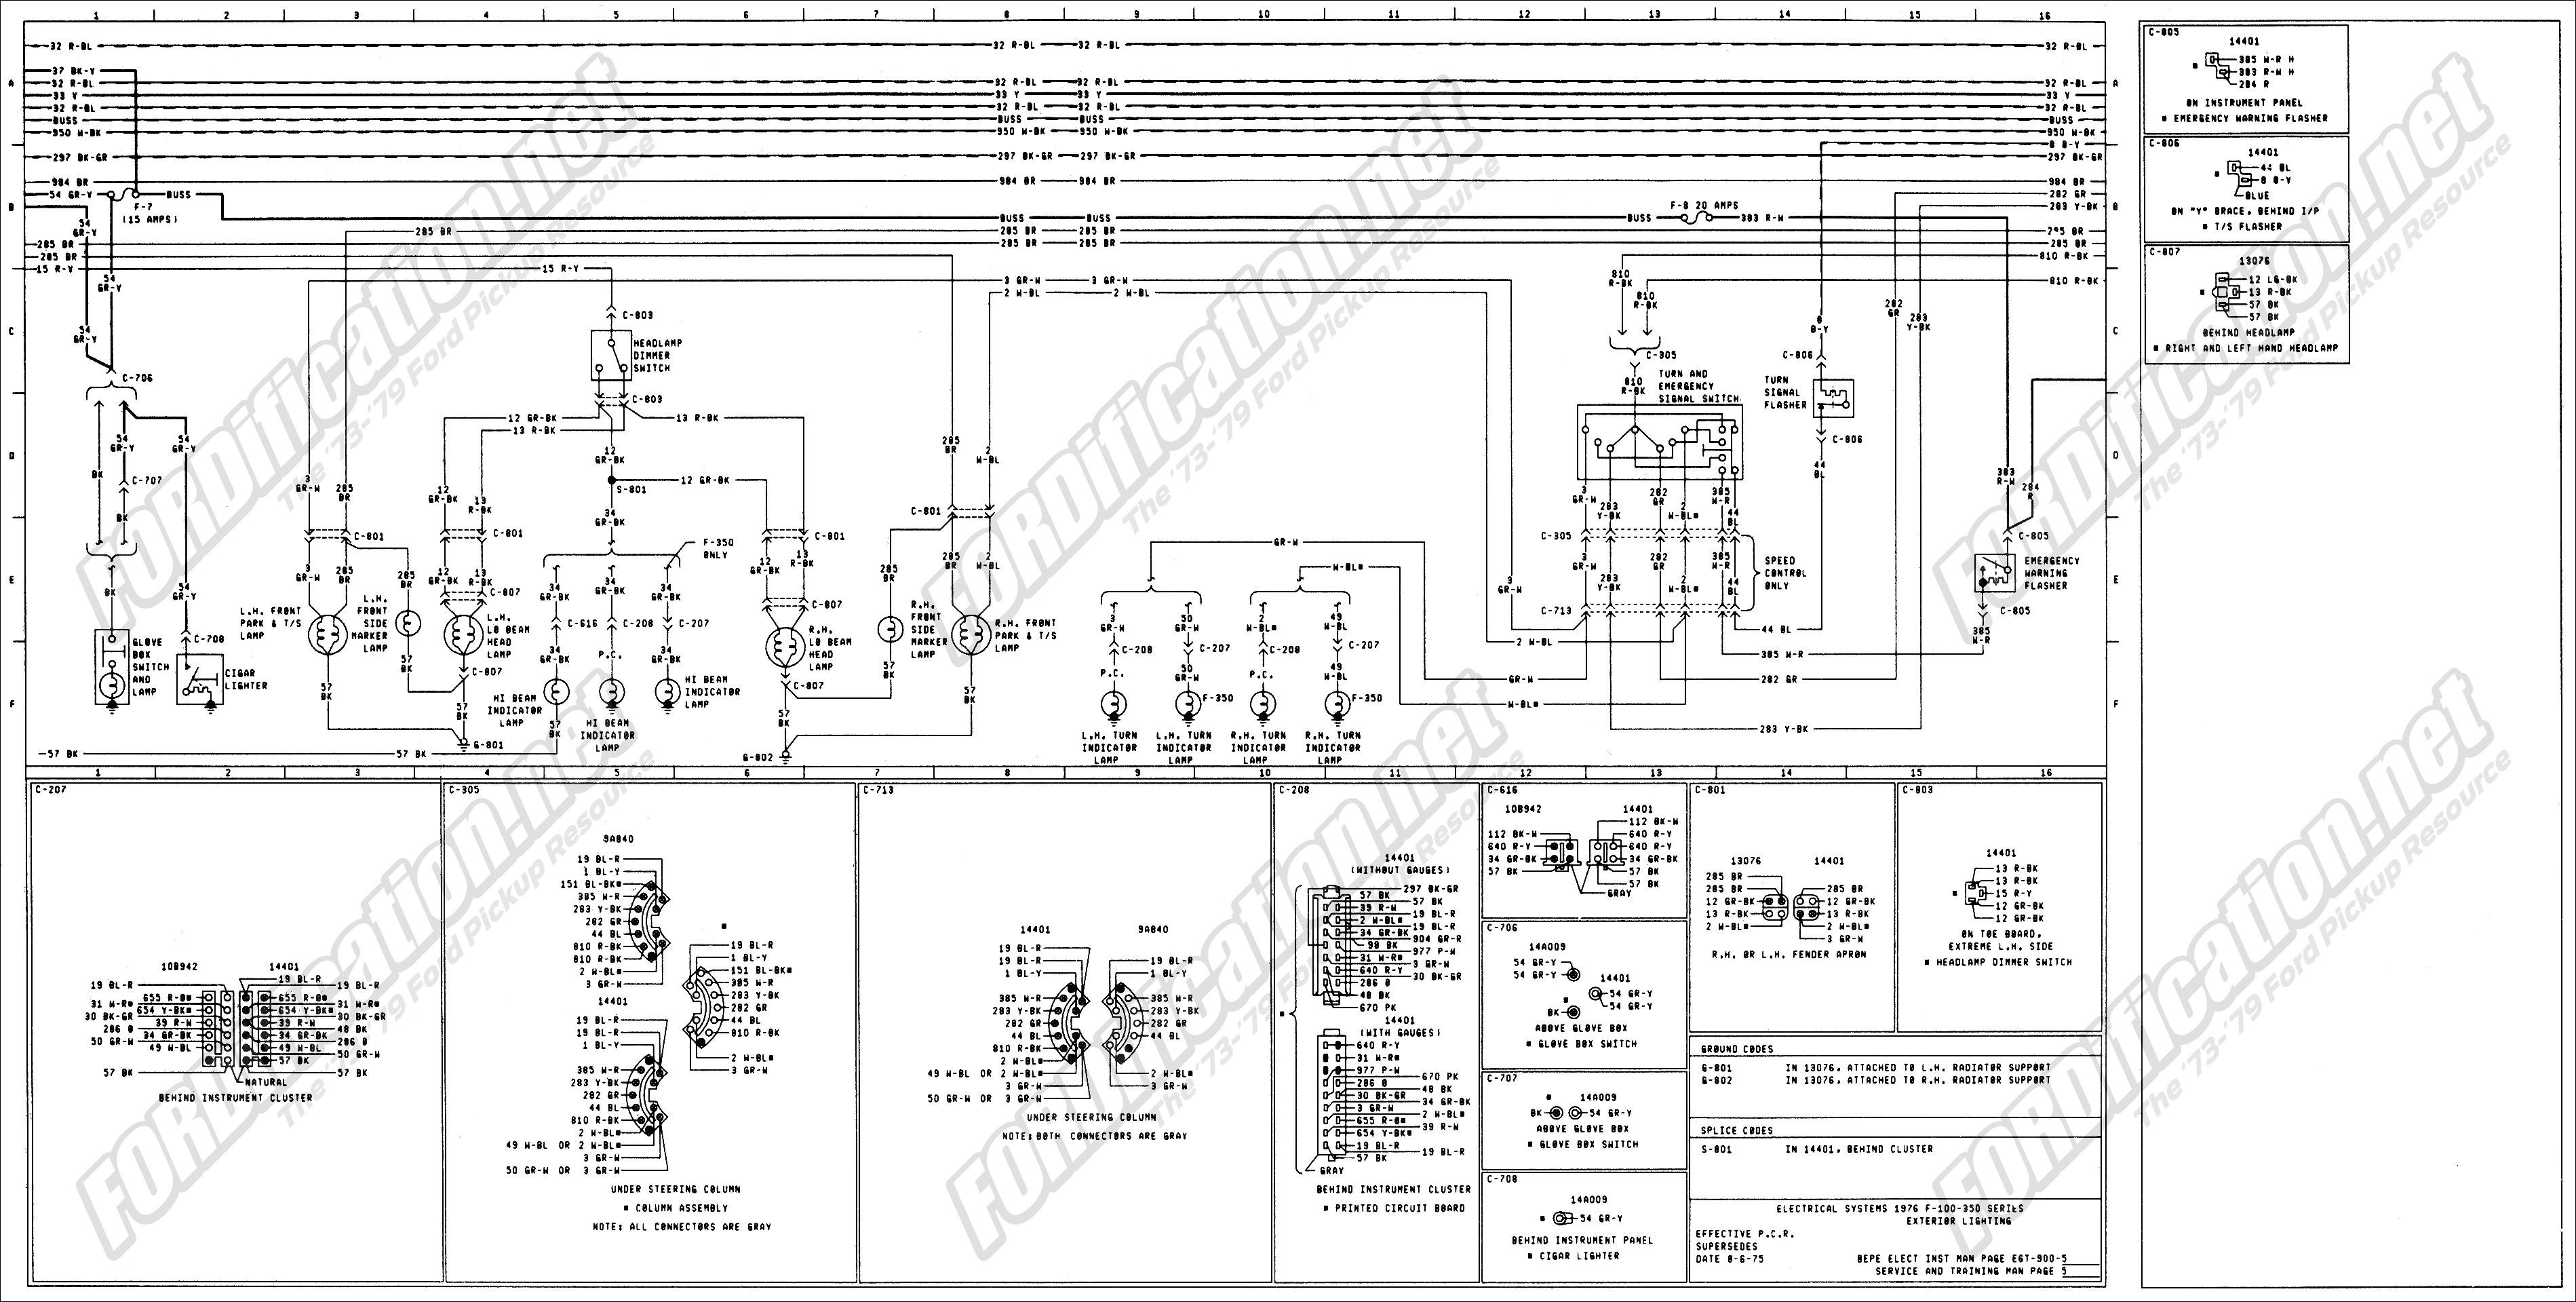 1973-1979 Ford Truck Wiring Diagrams & Schematics